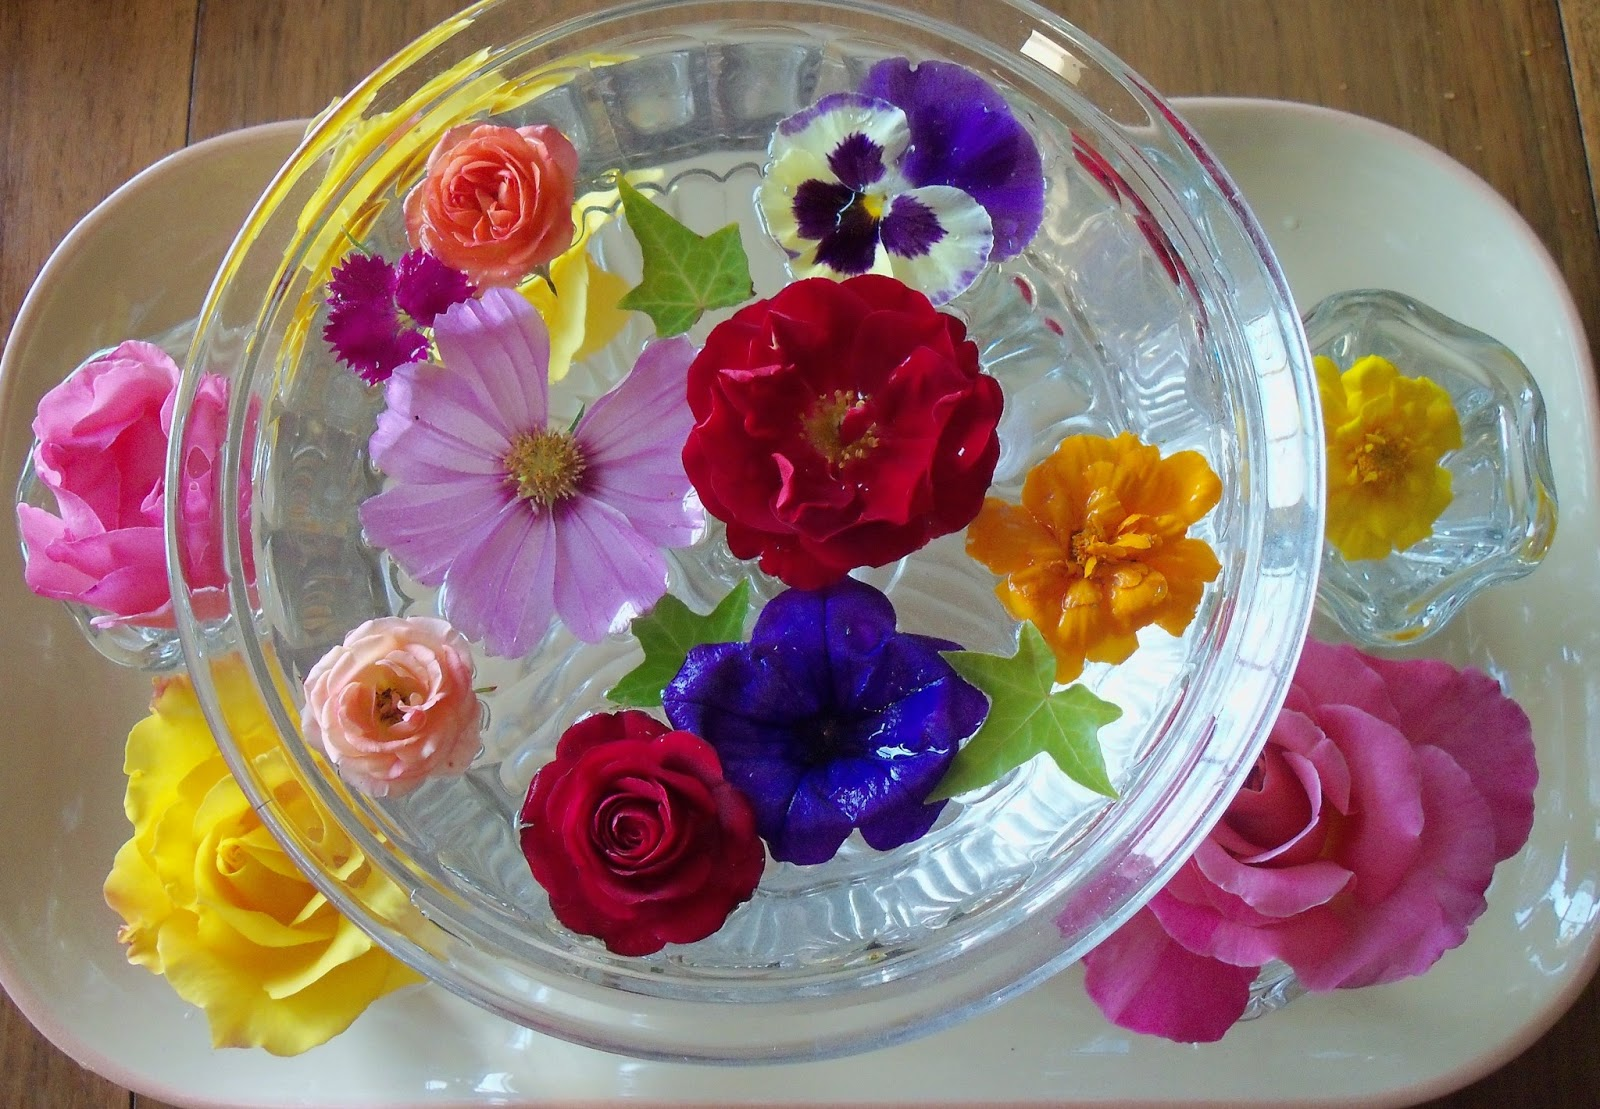 Make the best of things float your flowers for a beautiful arrangement flowers that are blooming a bit droopy and they arent displaying well in the usual vases so i started floating them in my serving dishes and voila mightylinksfo